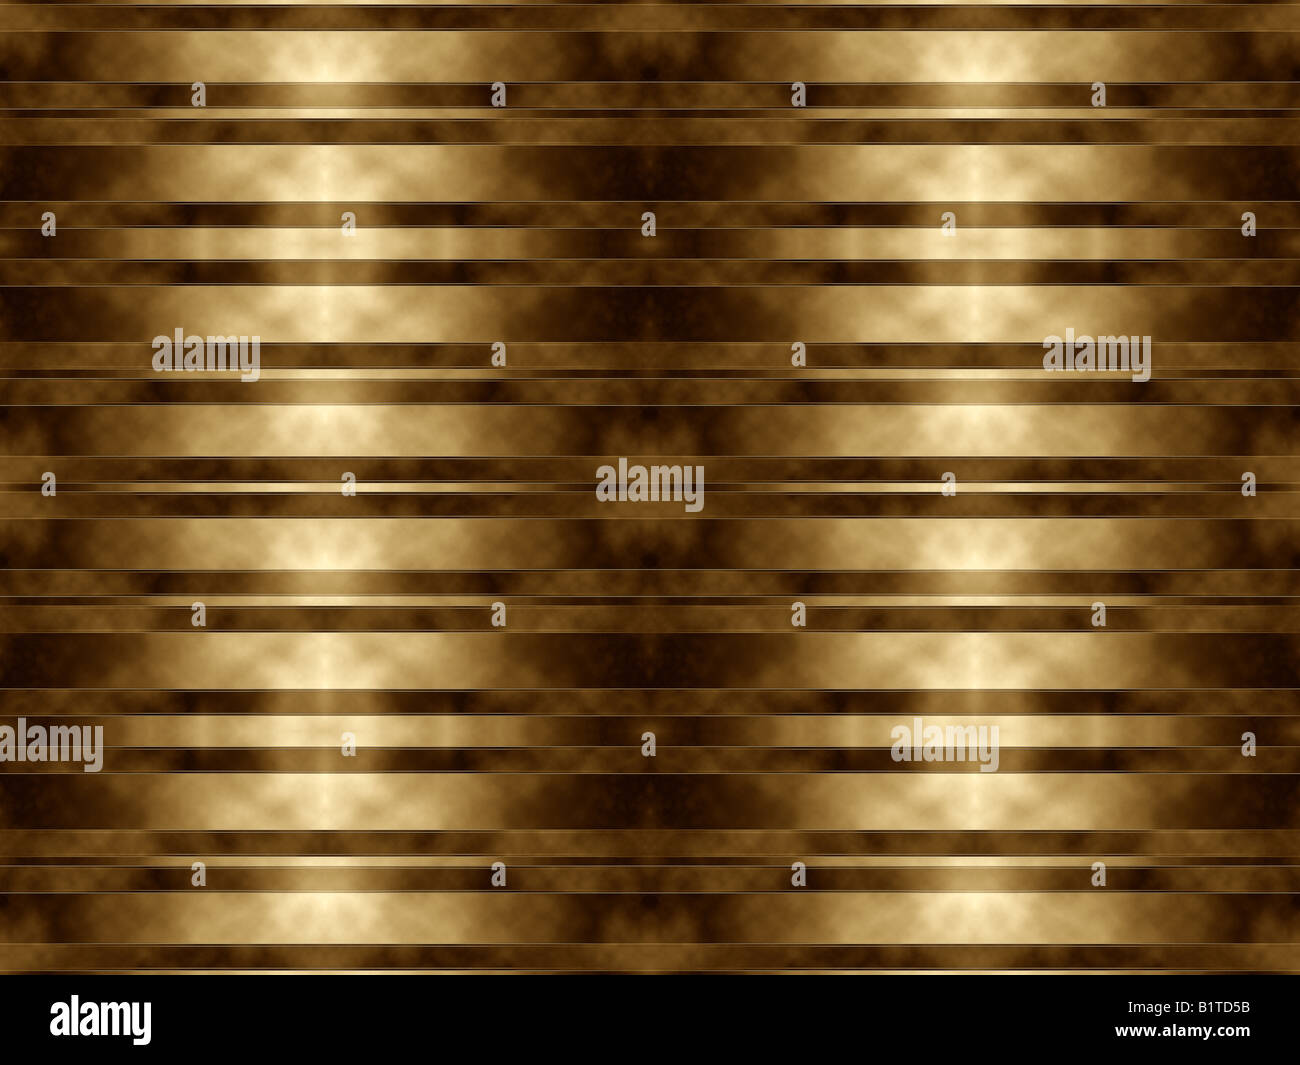 A very detailed and figured ornamental texture Stock Photo